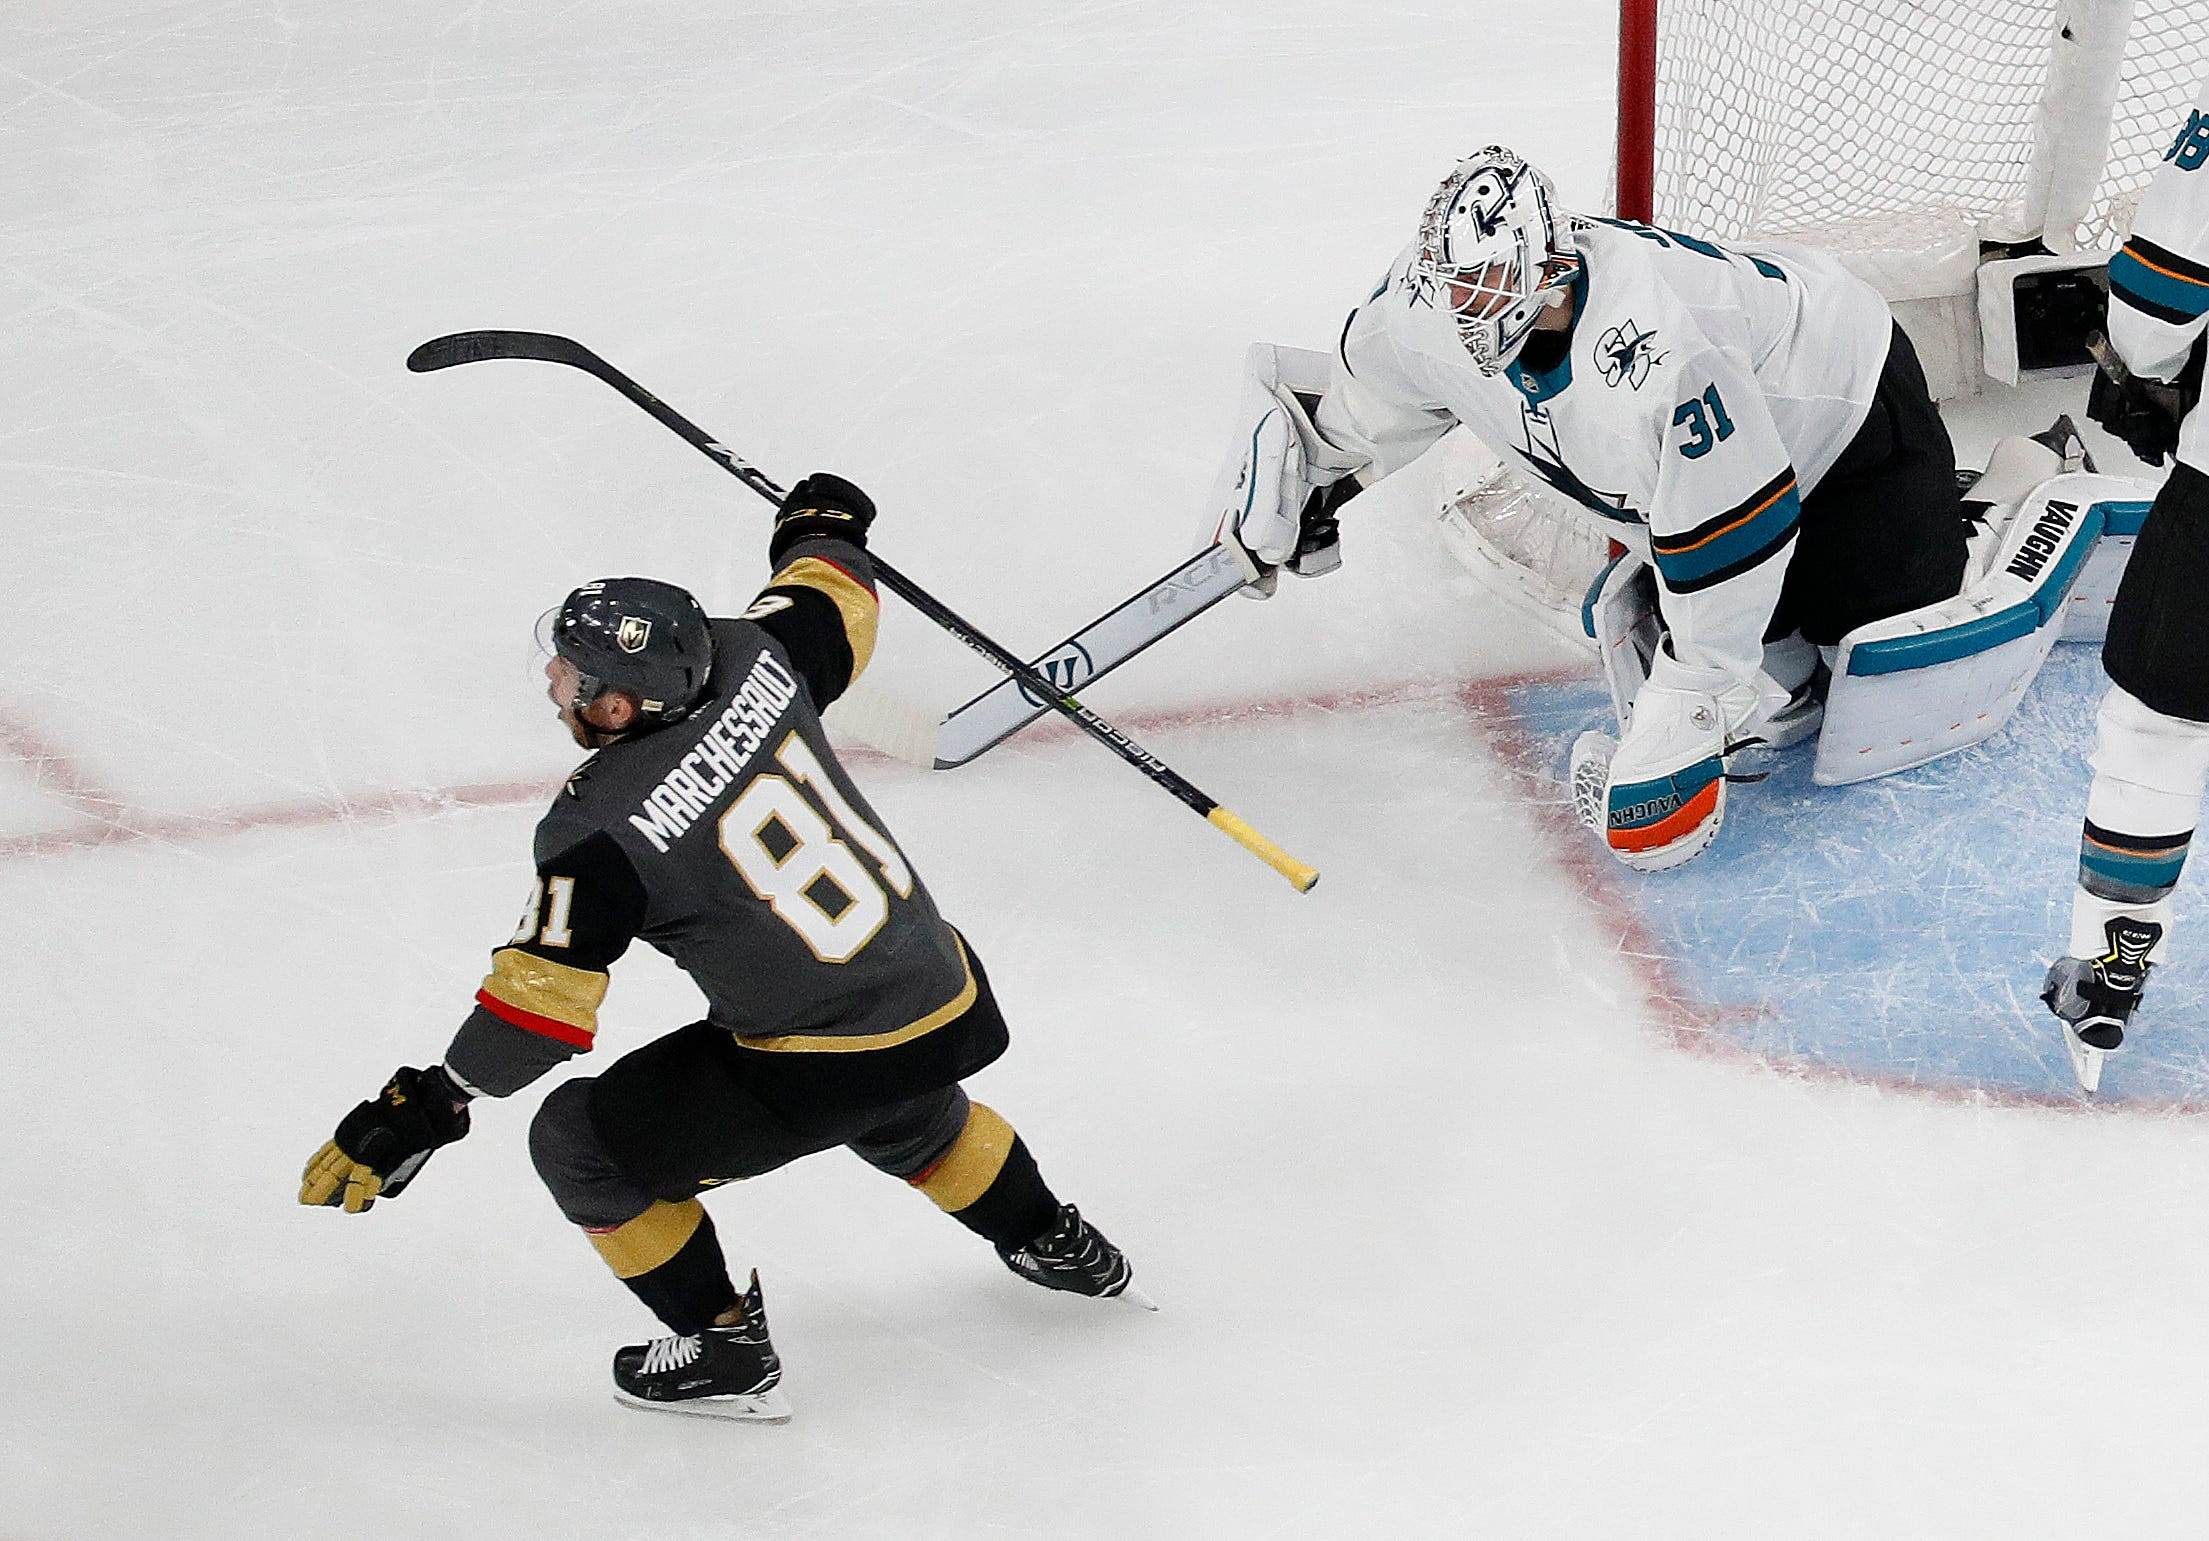 Couture's goal in 2OT lifts Sharks past Vegas in Game 2